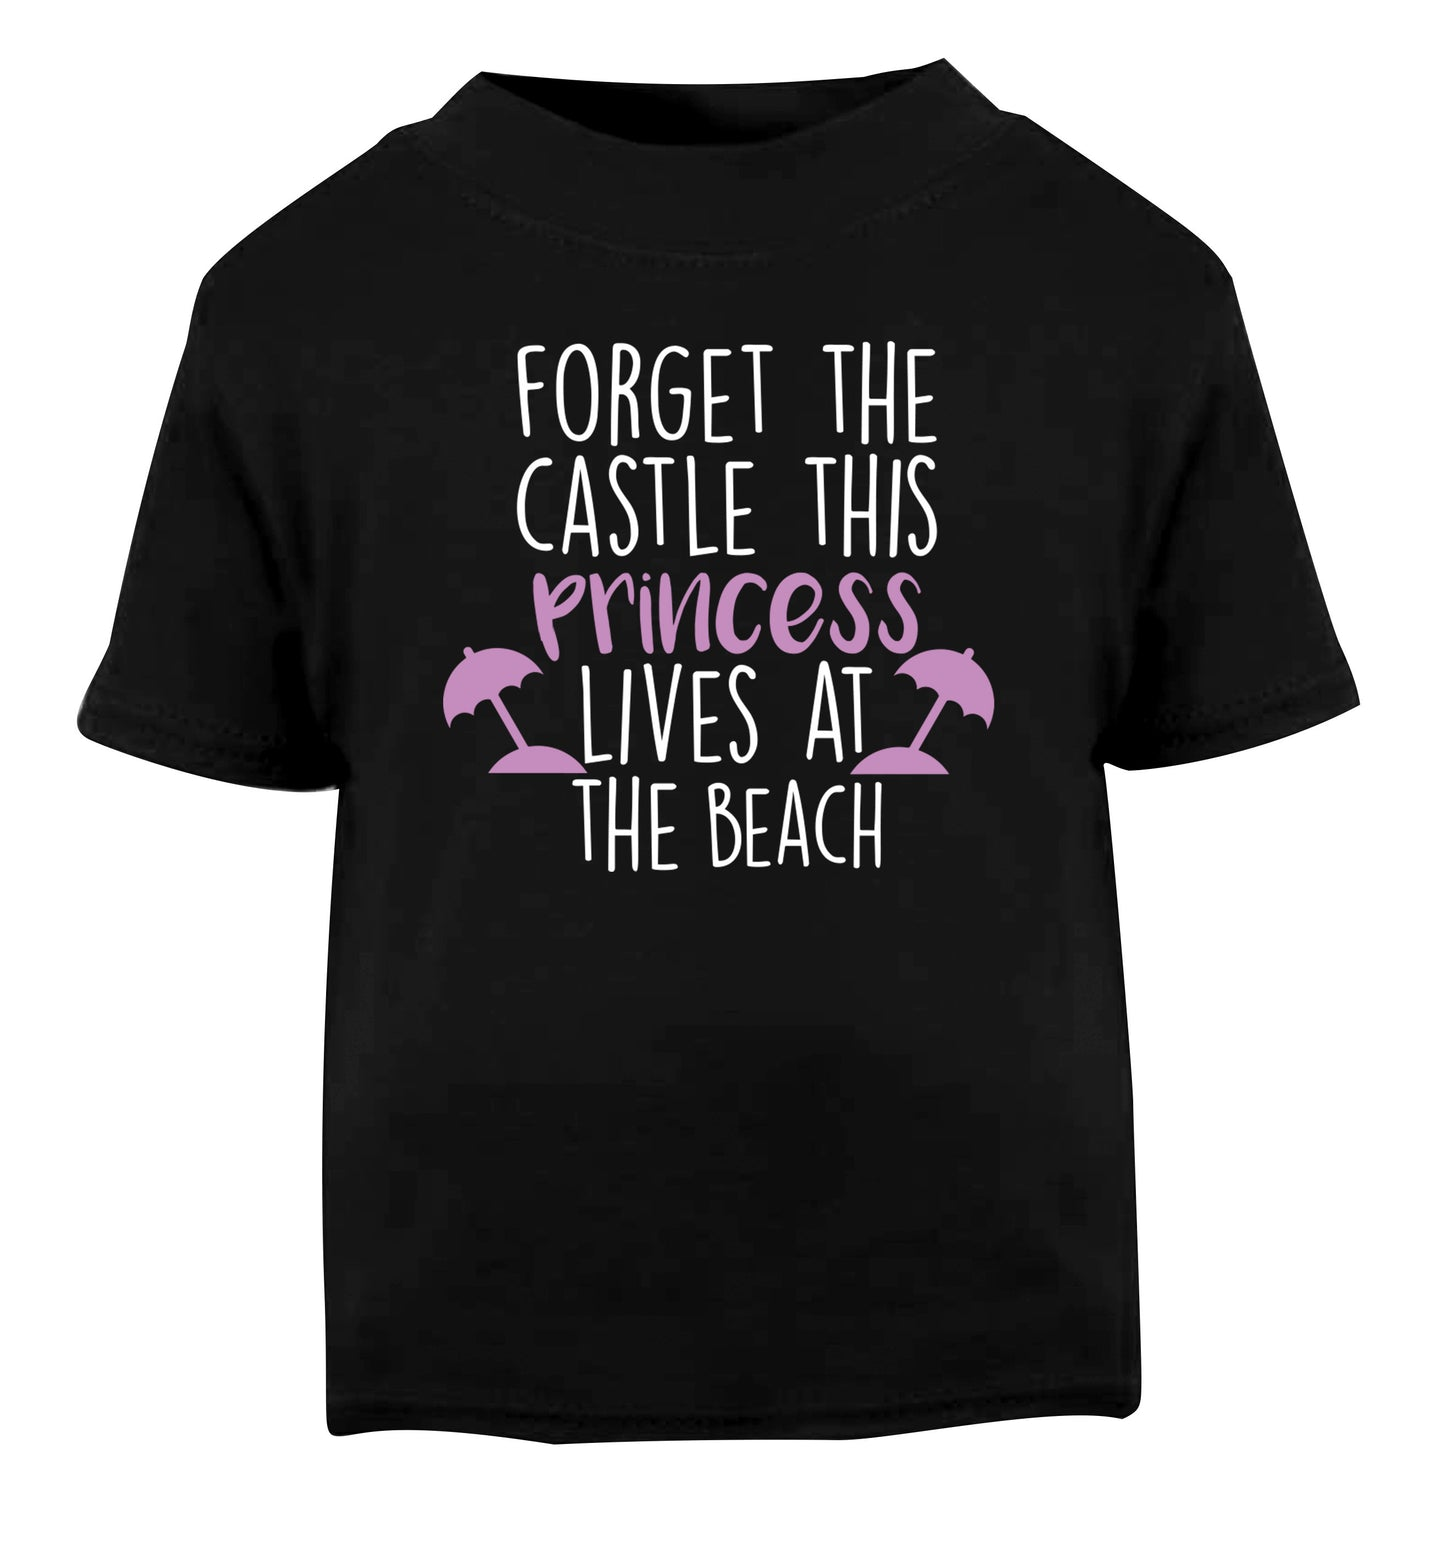 Forget the castle this princess lives at the beach Black Baby Toddler Tshirt 2 years